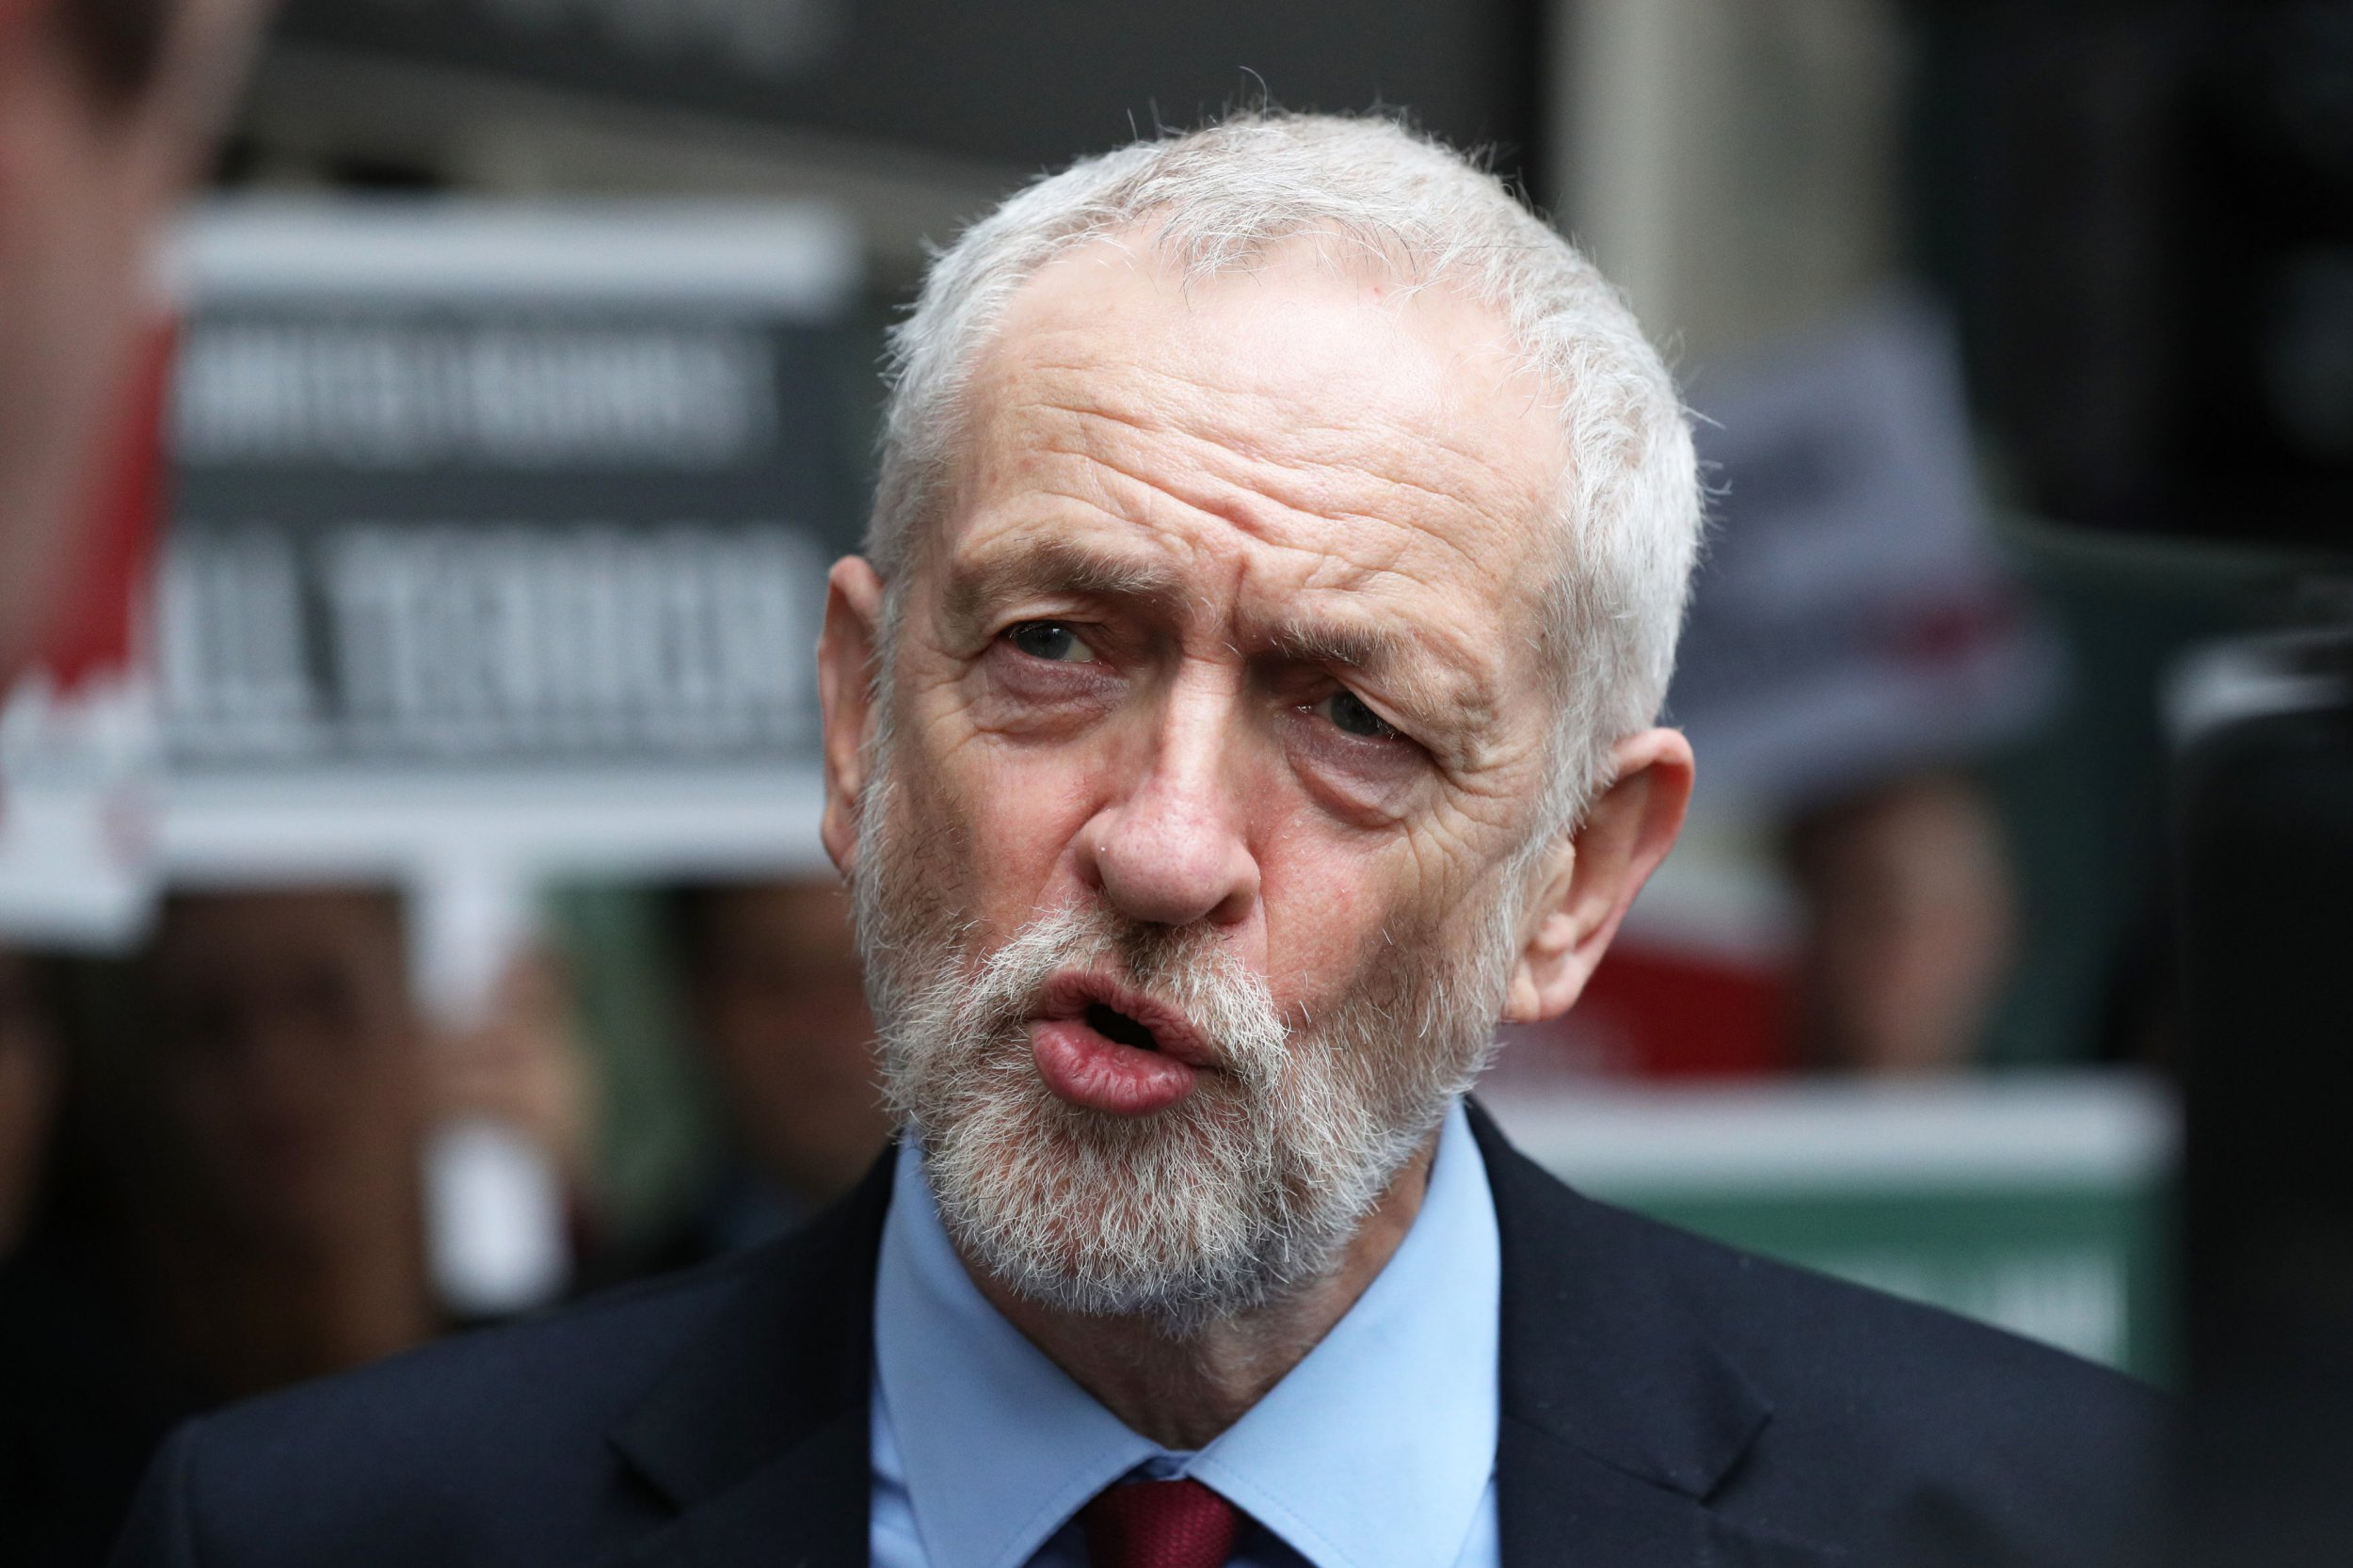 Jeremy Corbyn blames 'confusion' for walking out of Brexit talks